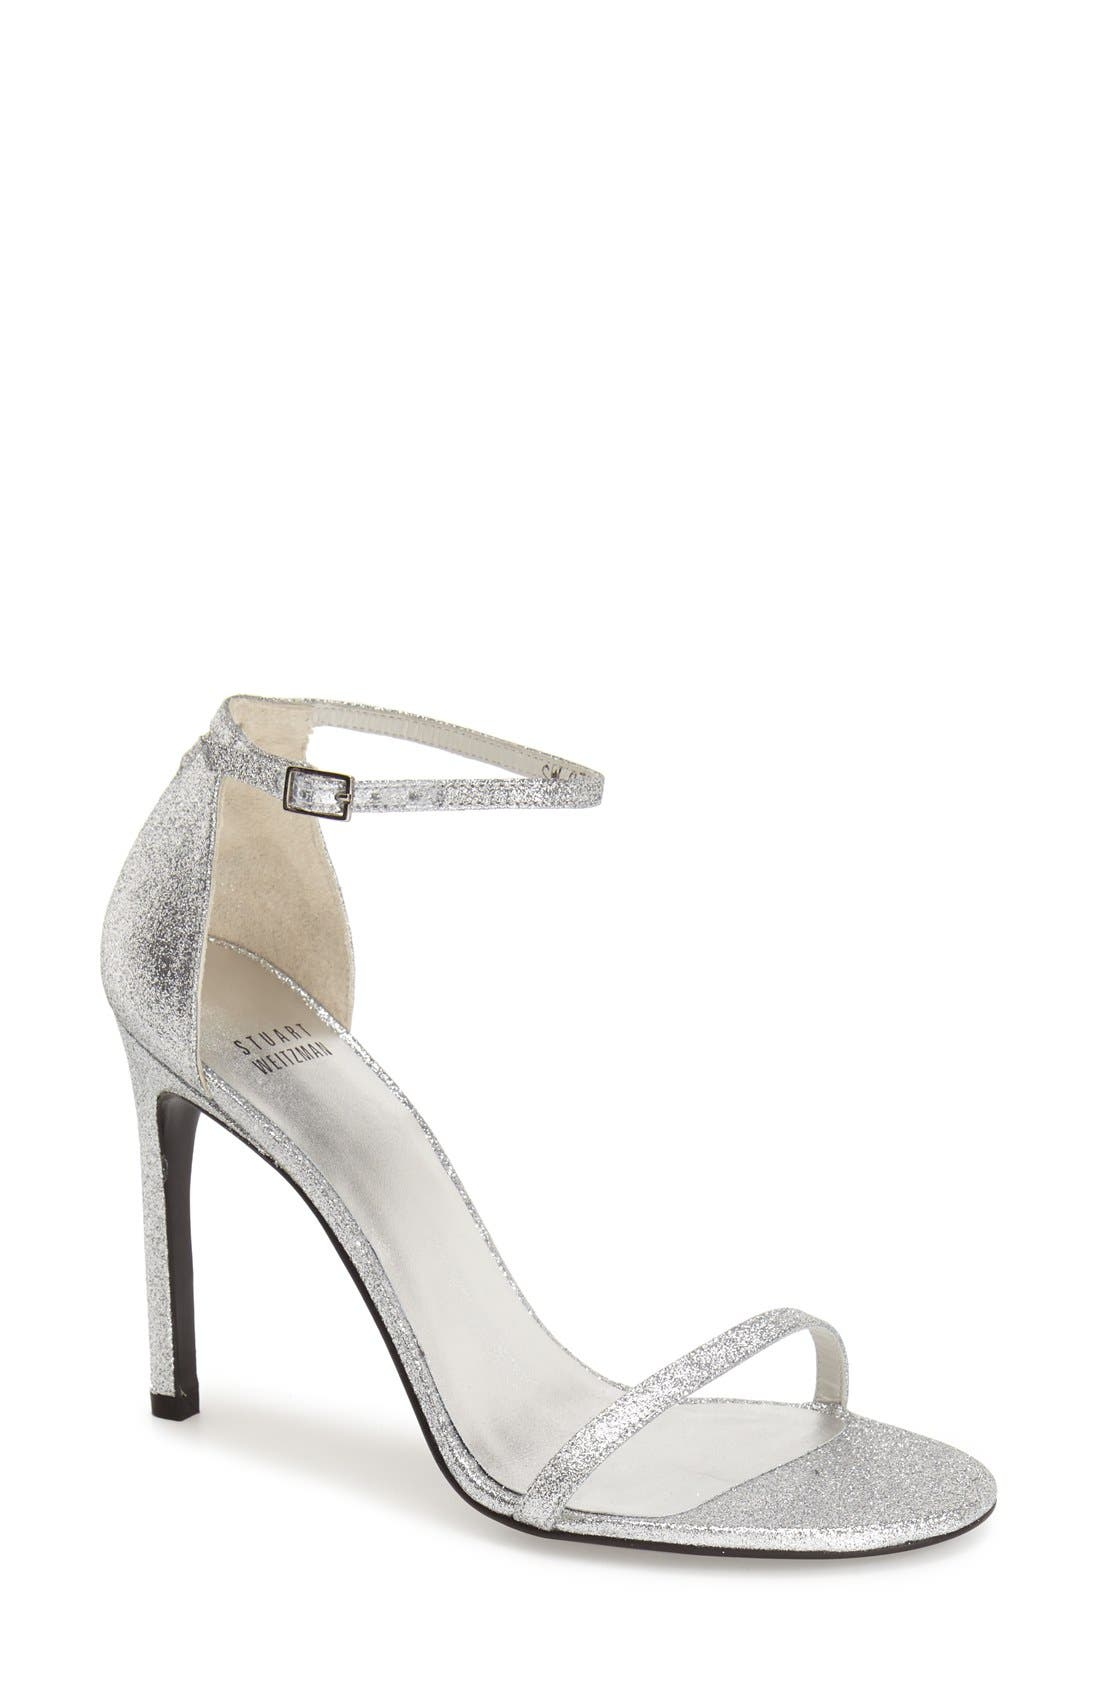 Nudistsong Ankle Strap Sandal,                             Main thumbnail 17, color,